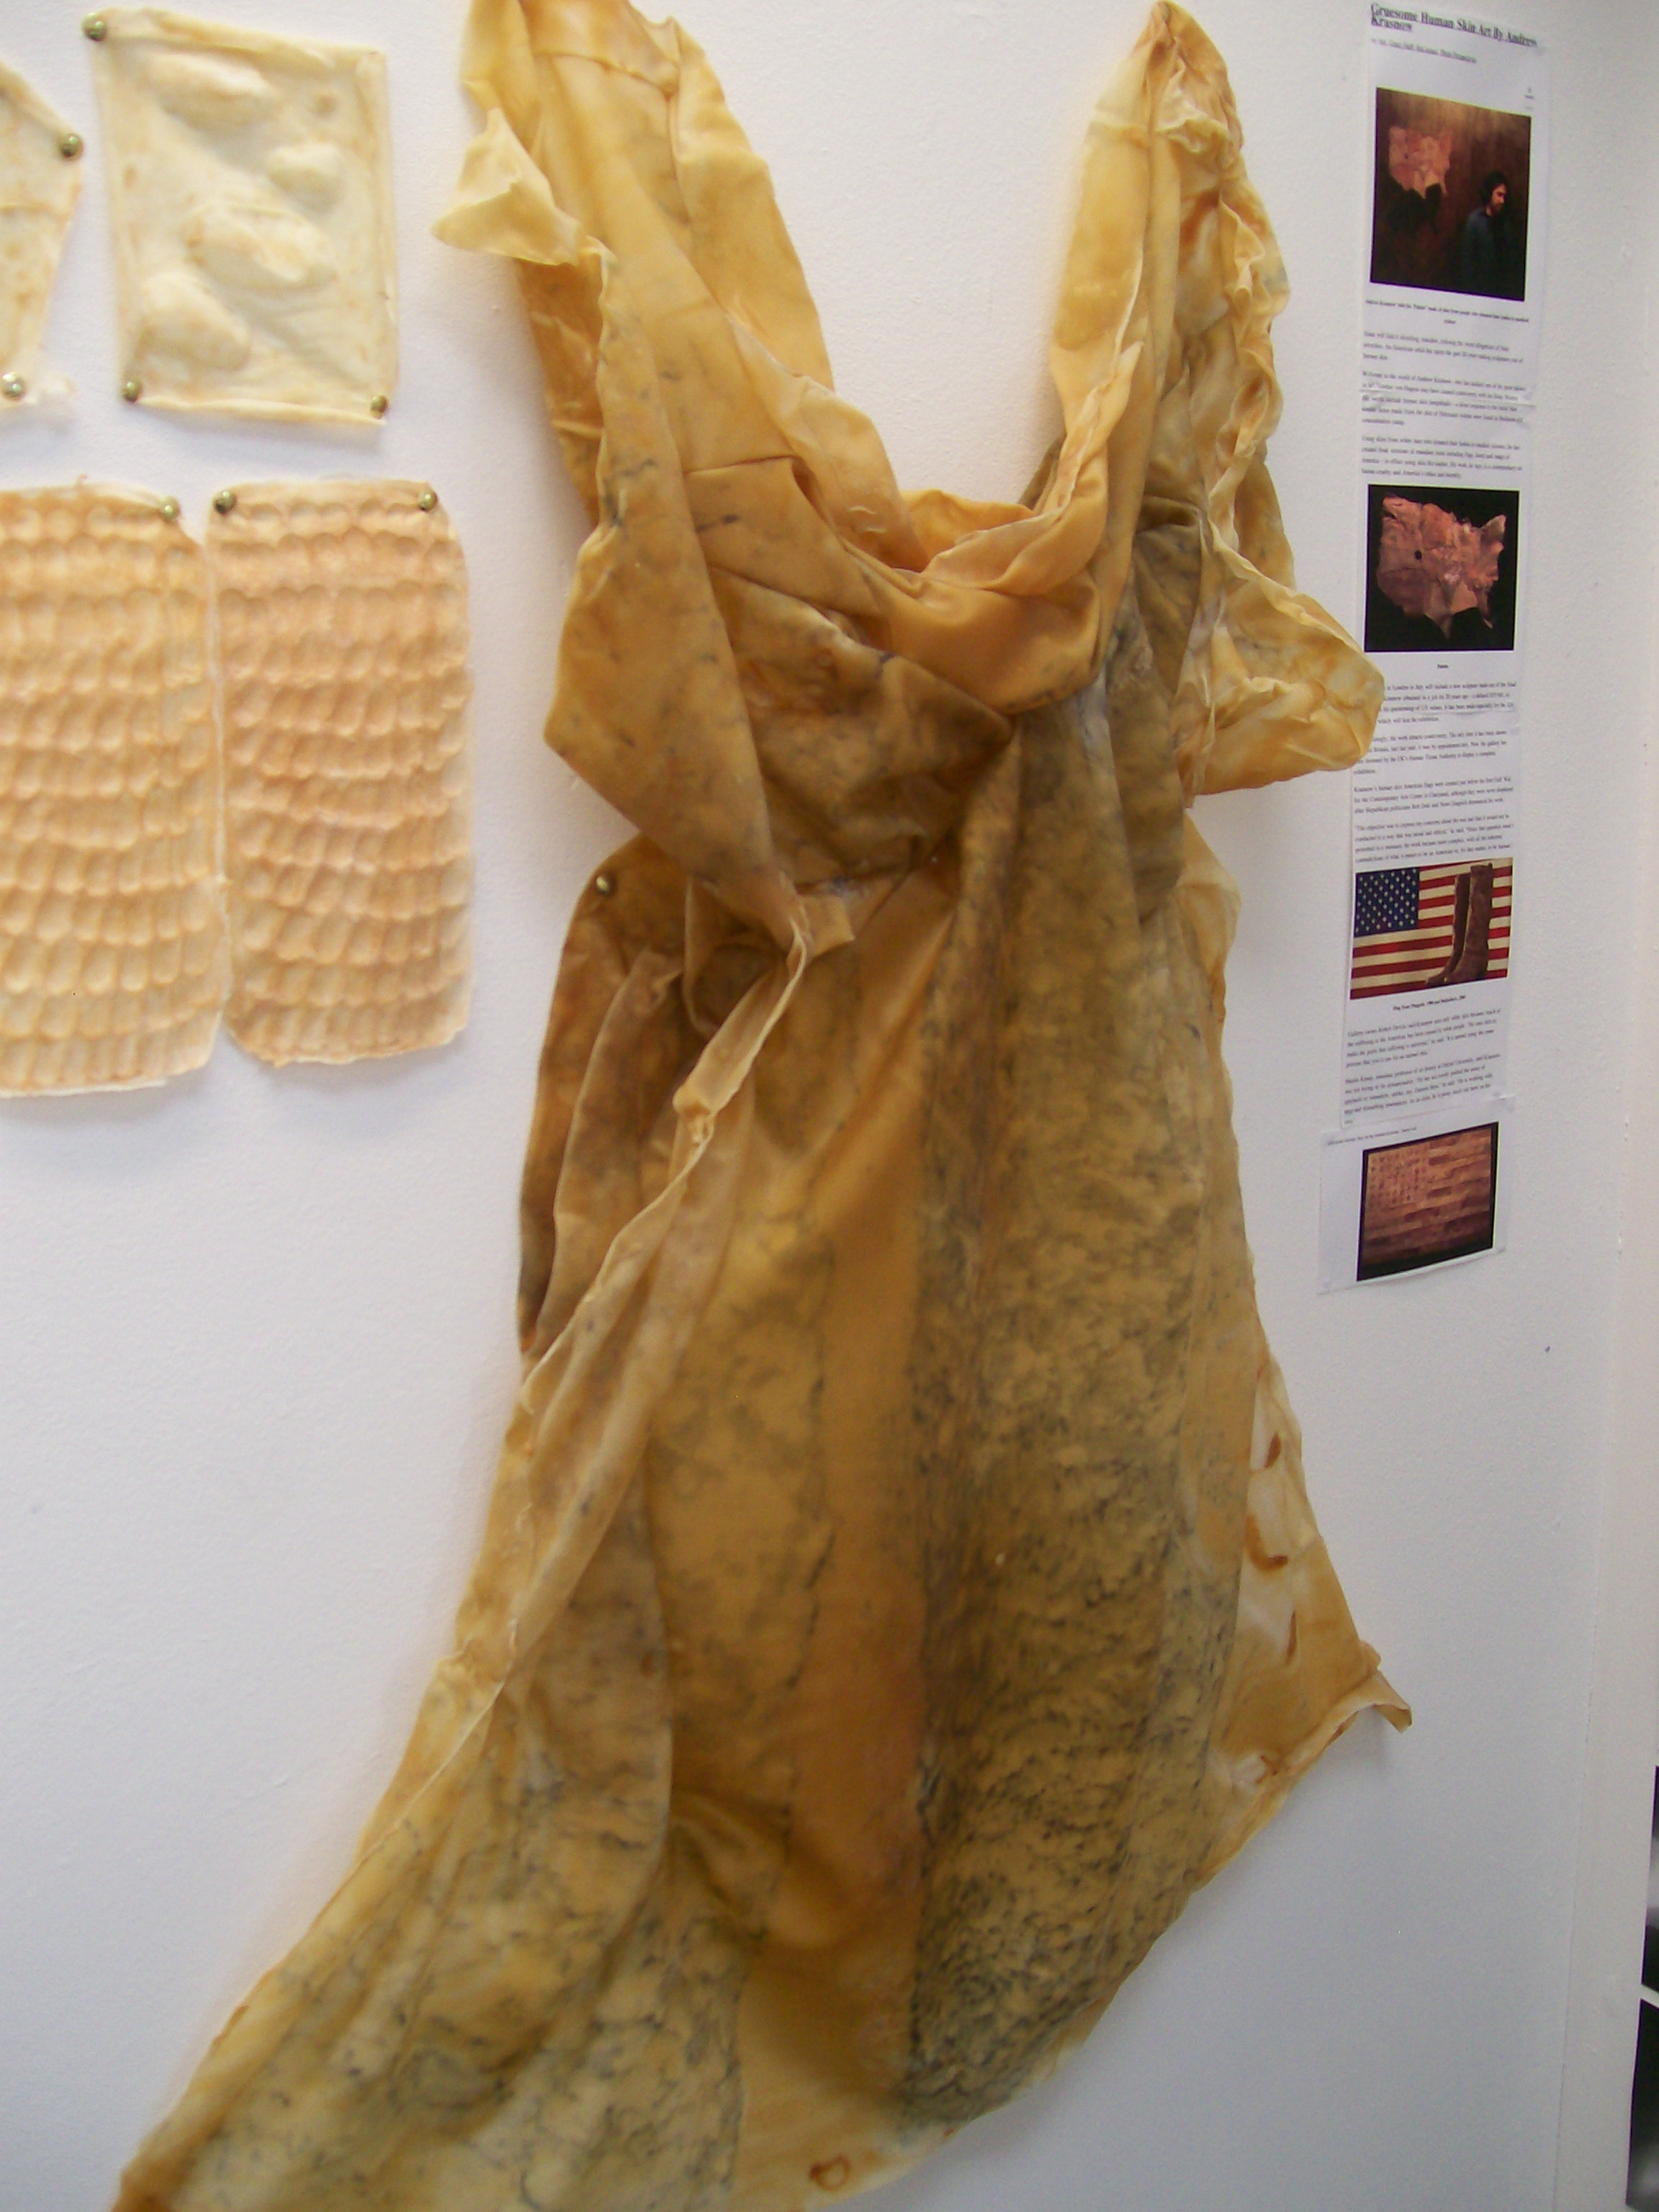 Latex Dress Maquette, 2010